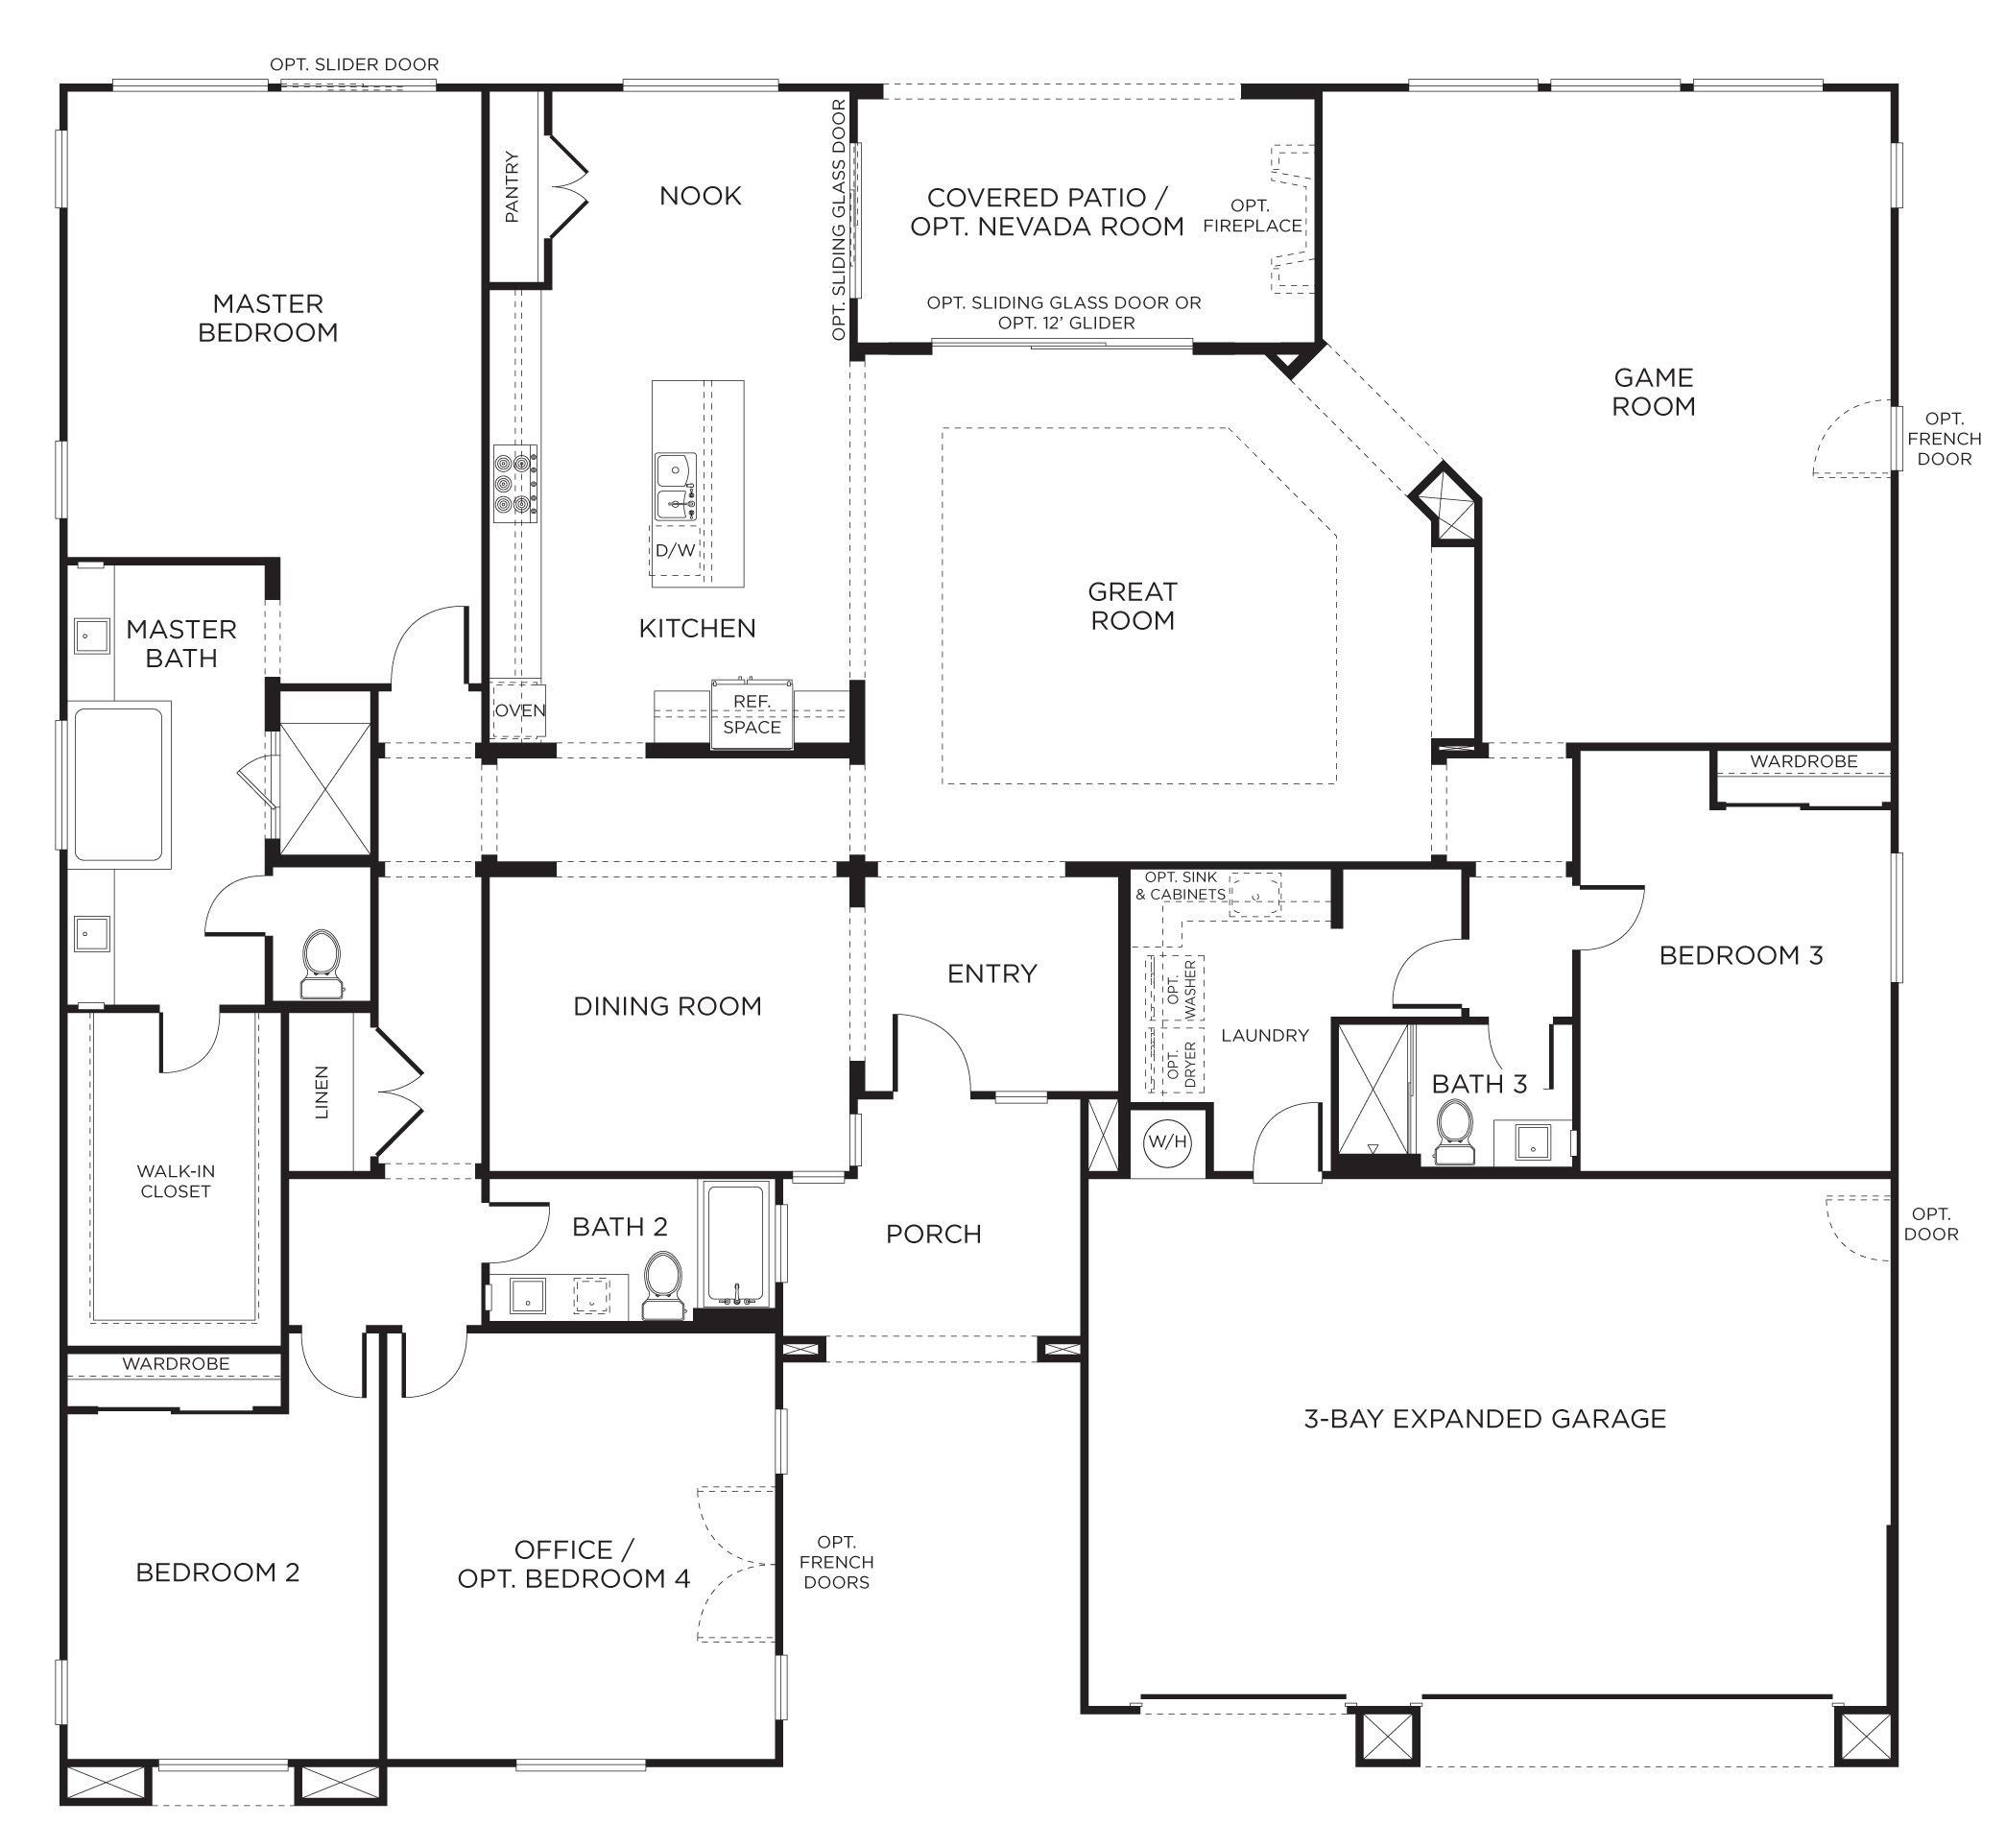 2 bedroom ranch house plans floorplan 2 3 4 bedrooms 3 bathrooms 3400 square 17958